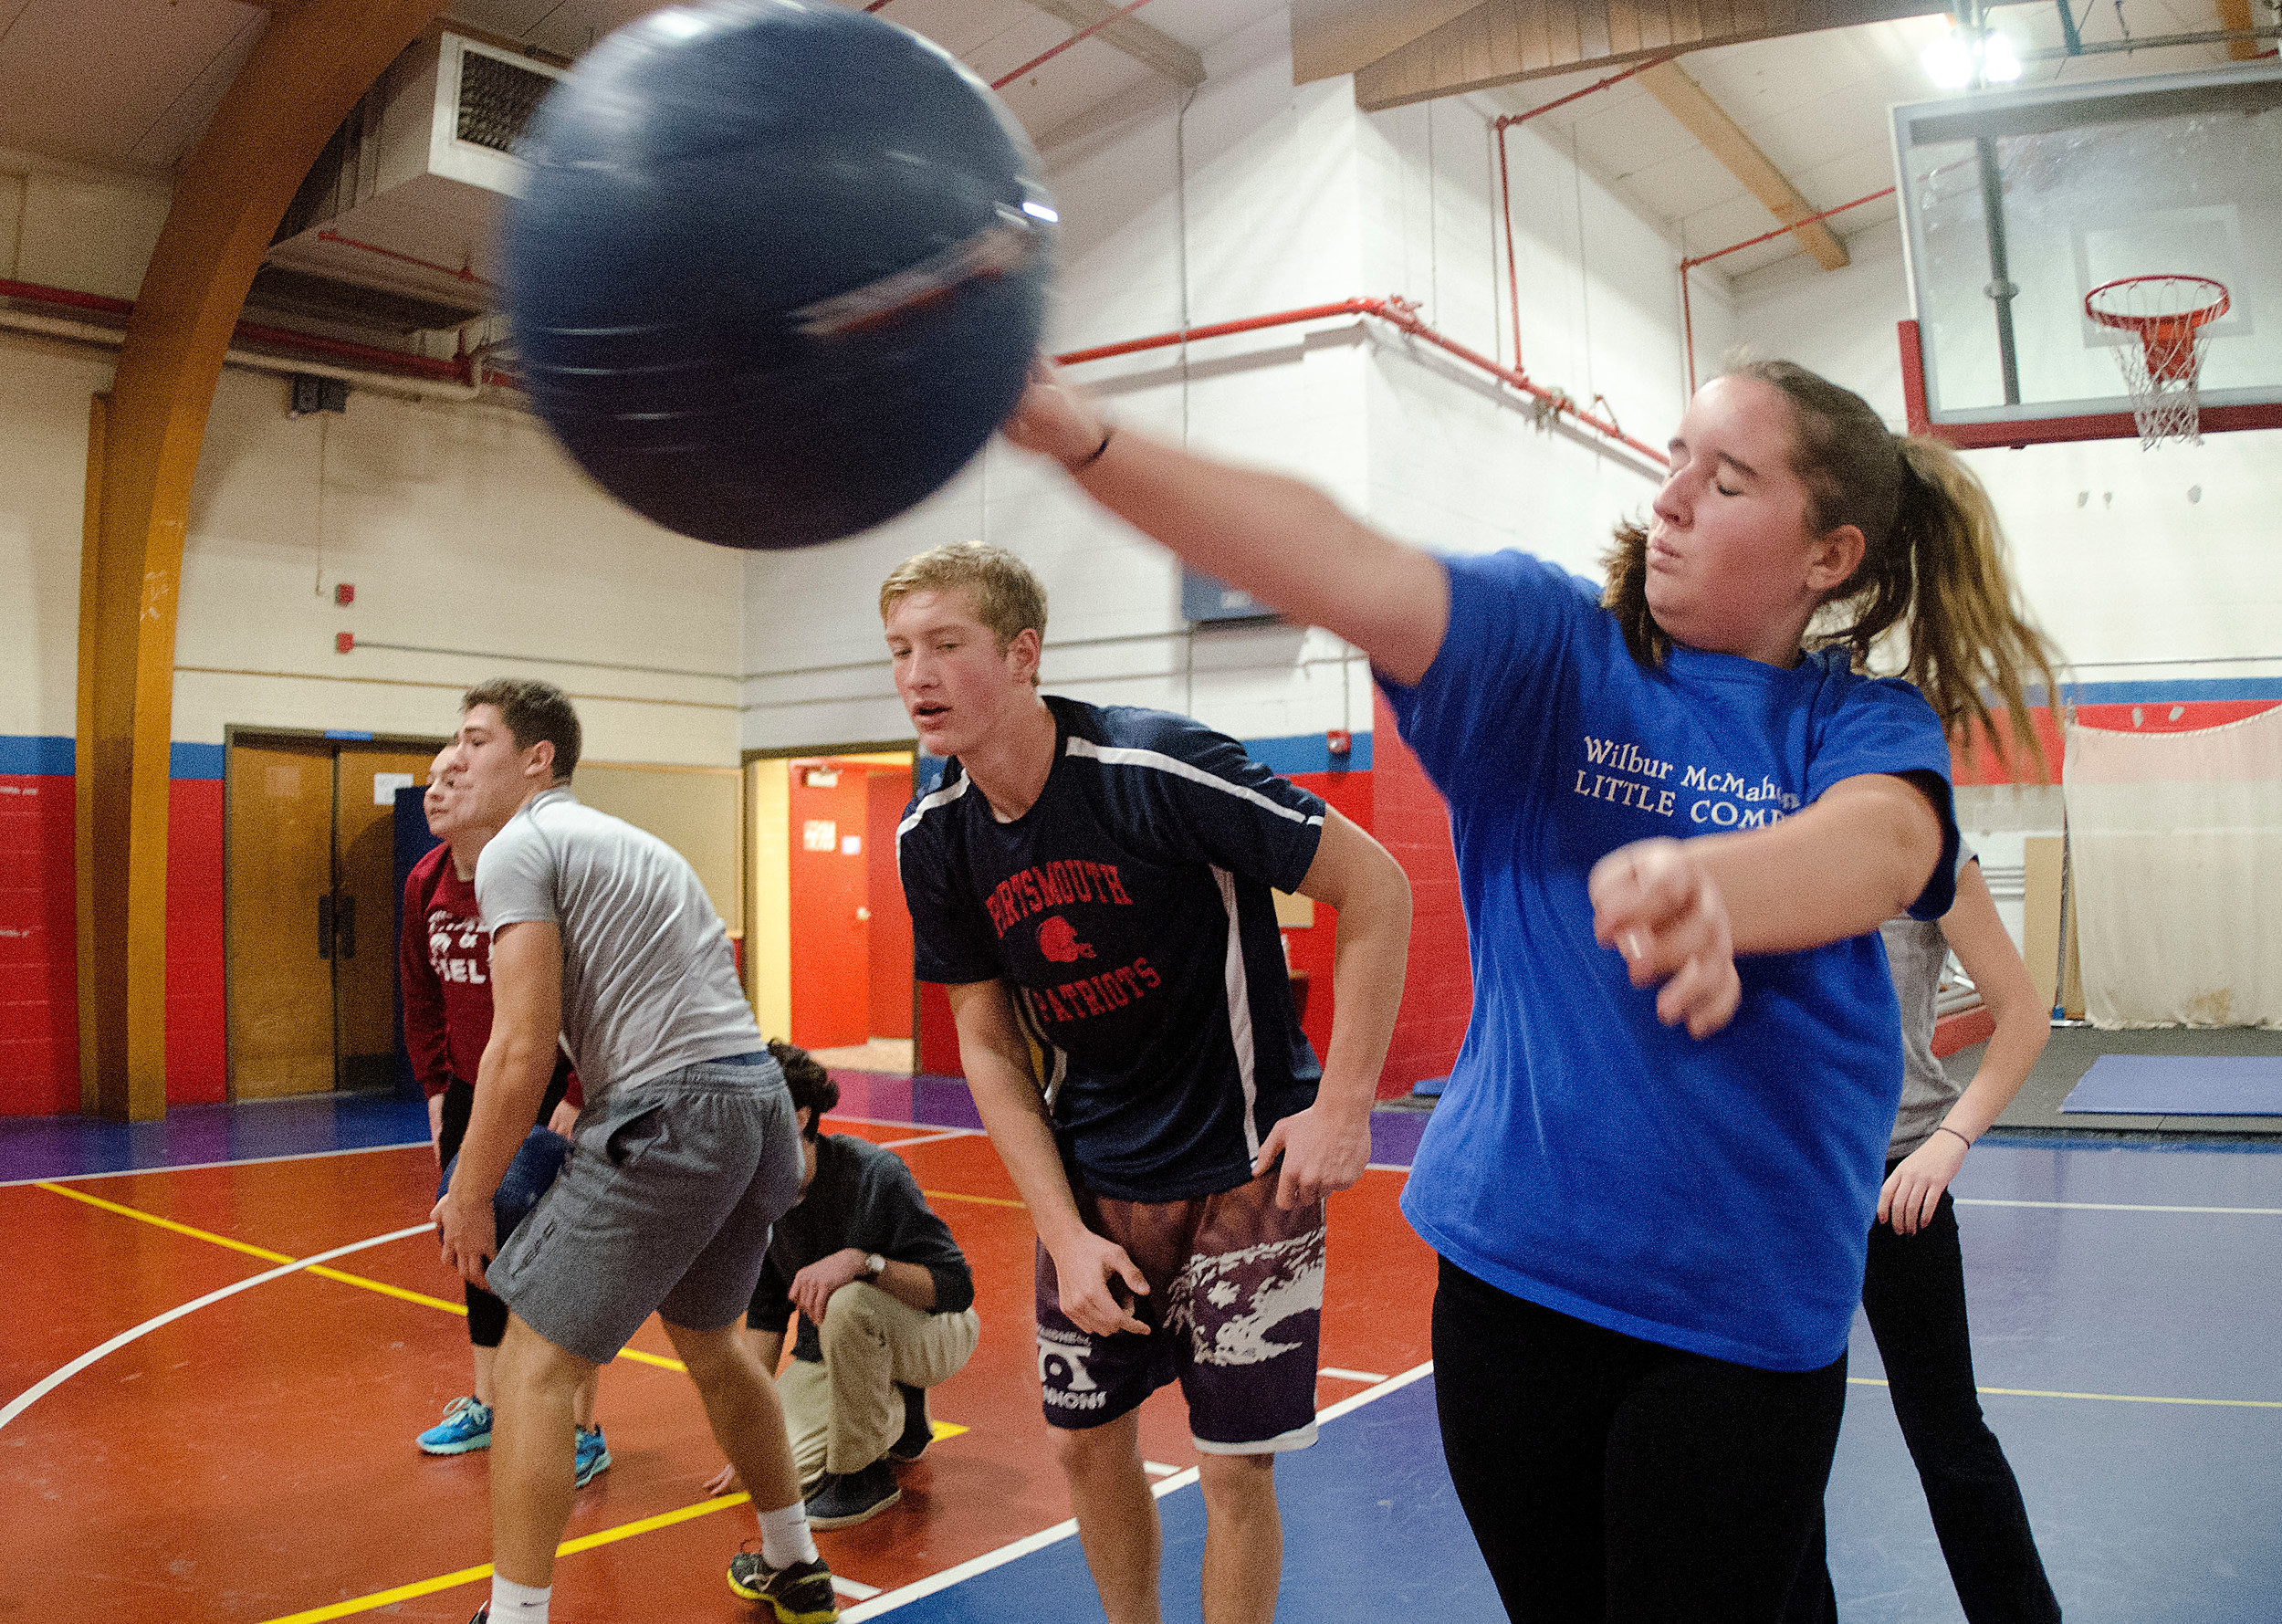 John Boruch looks on as teammate Jami Silveira heaves the ball across the gym.